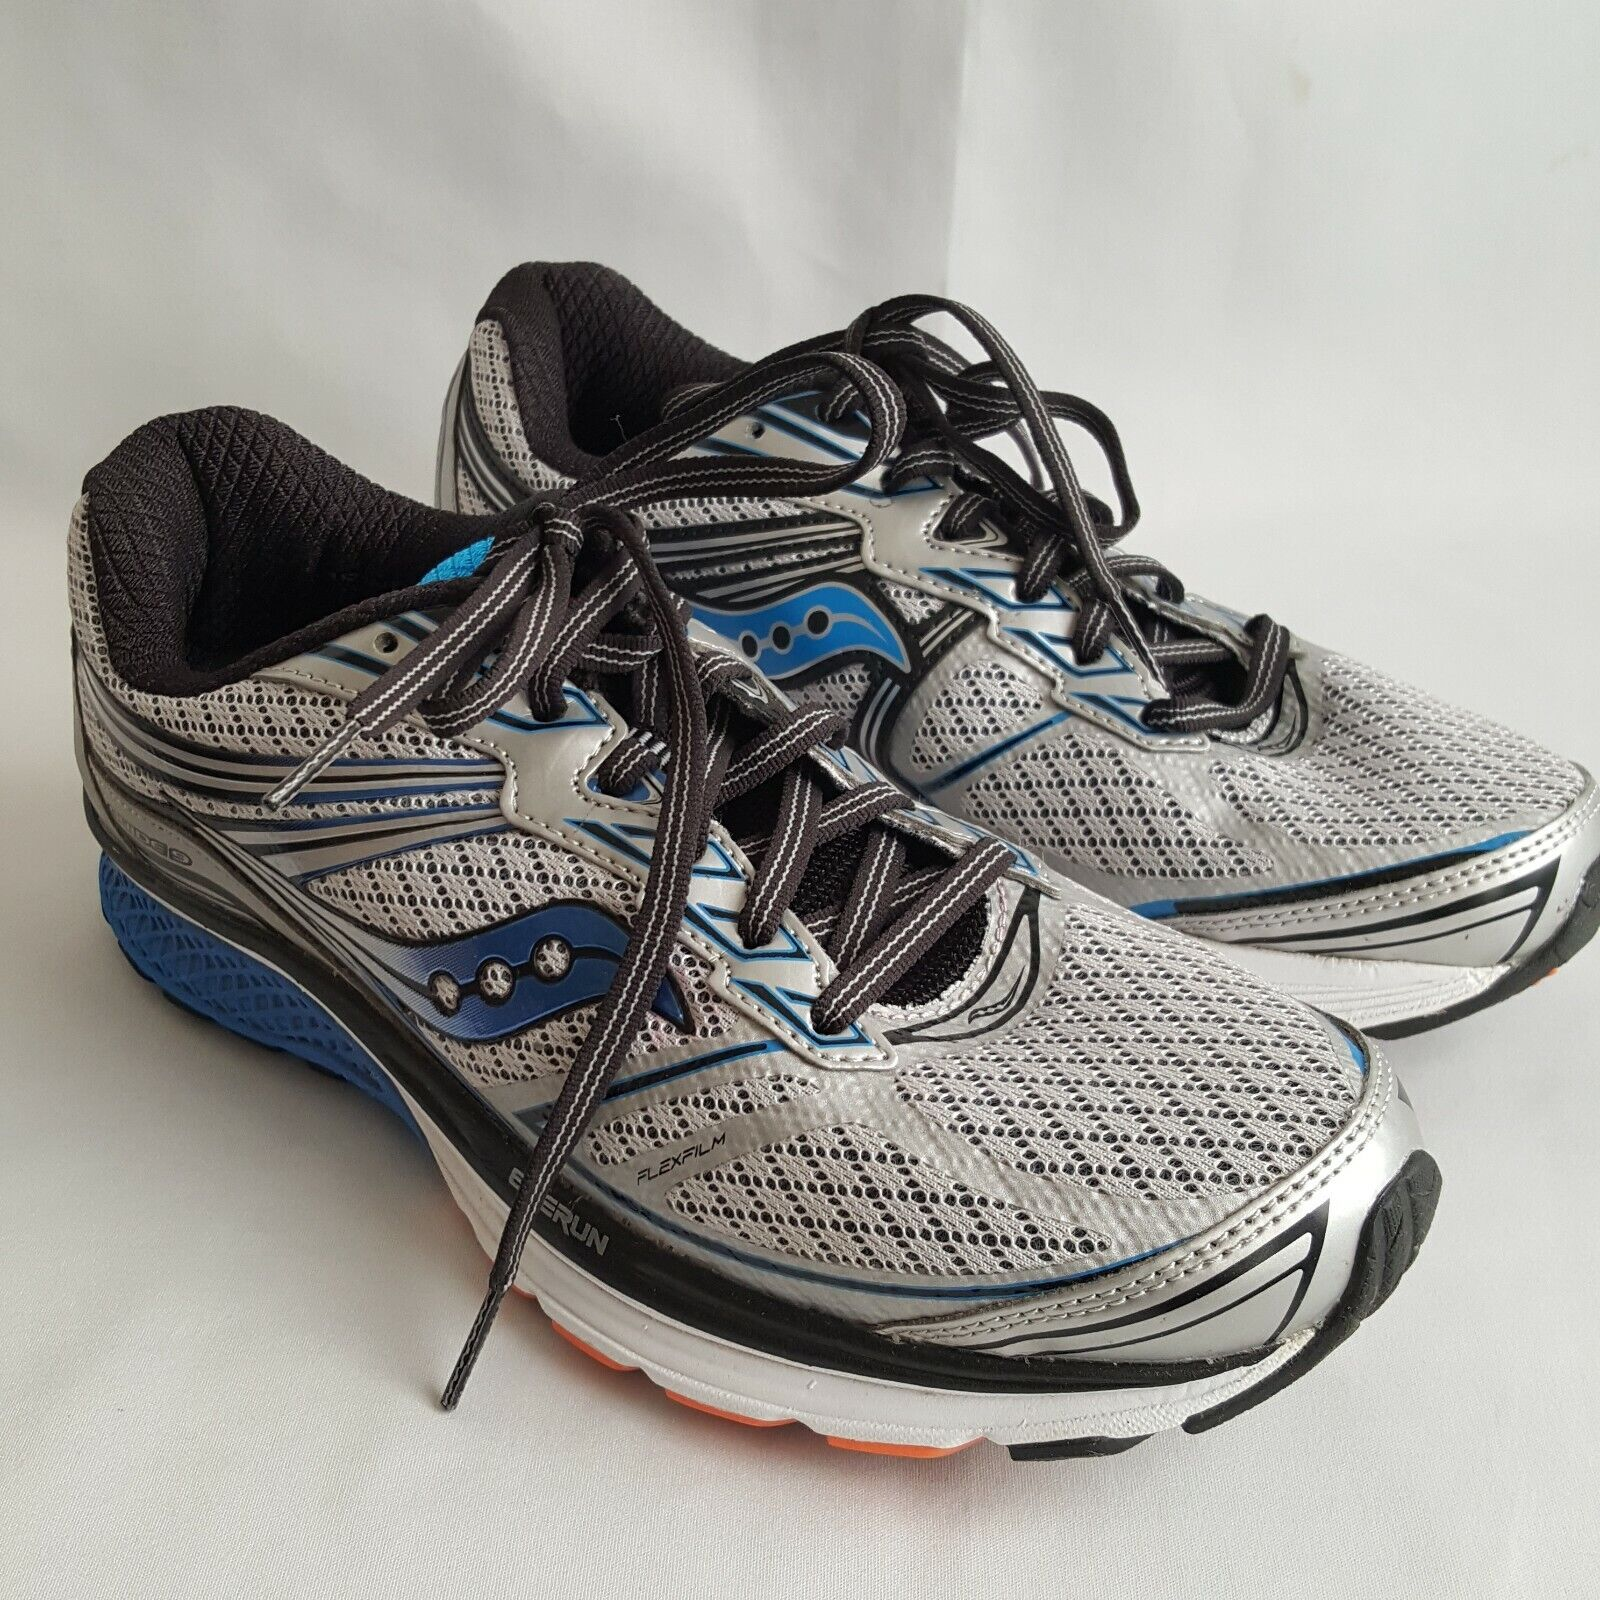 Saucony Guide 9 Men US 7.5 Silver Grey bluee Running shoes